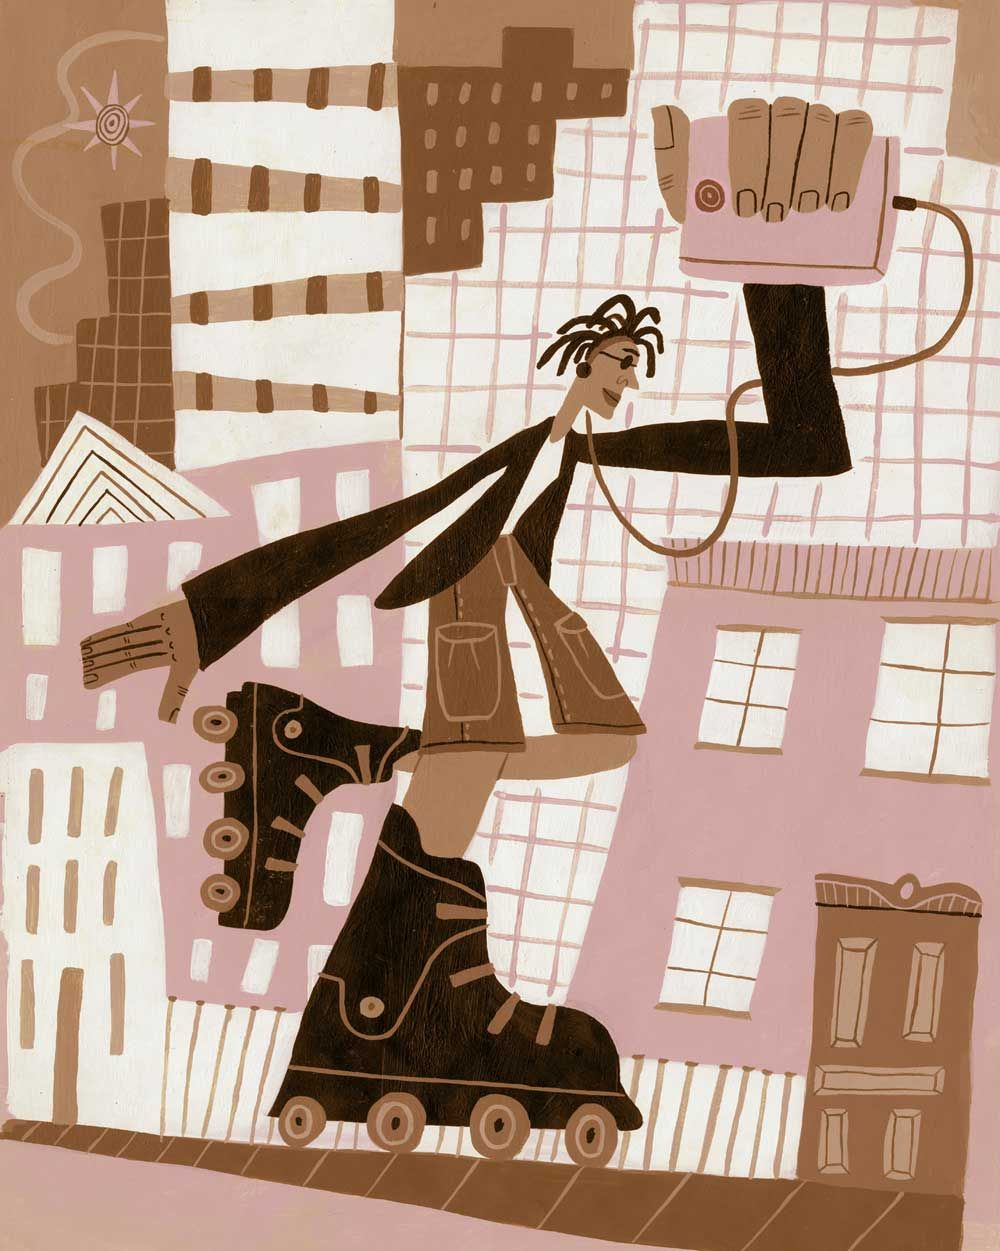 illustration and animation: Calef Brown - the graphic side of illustration